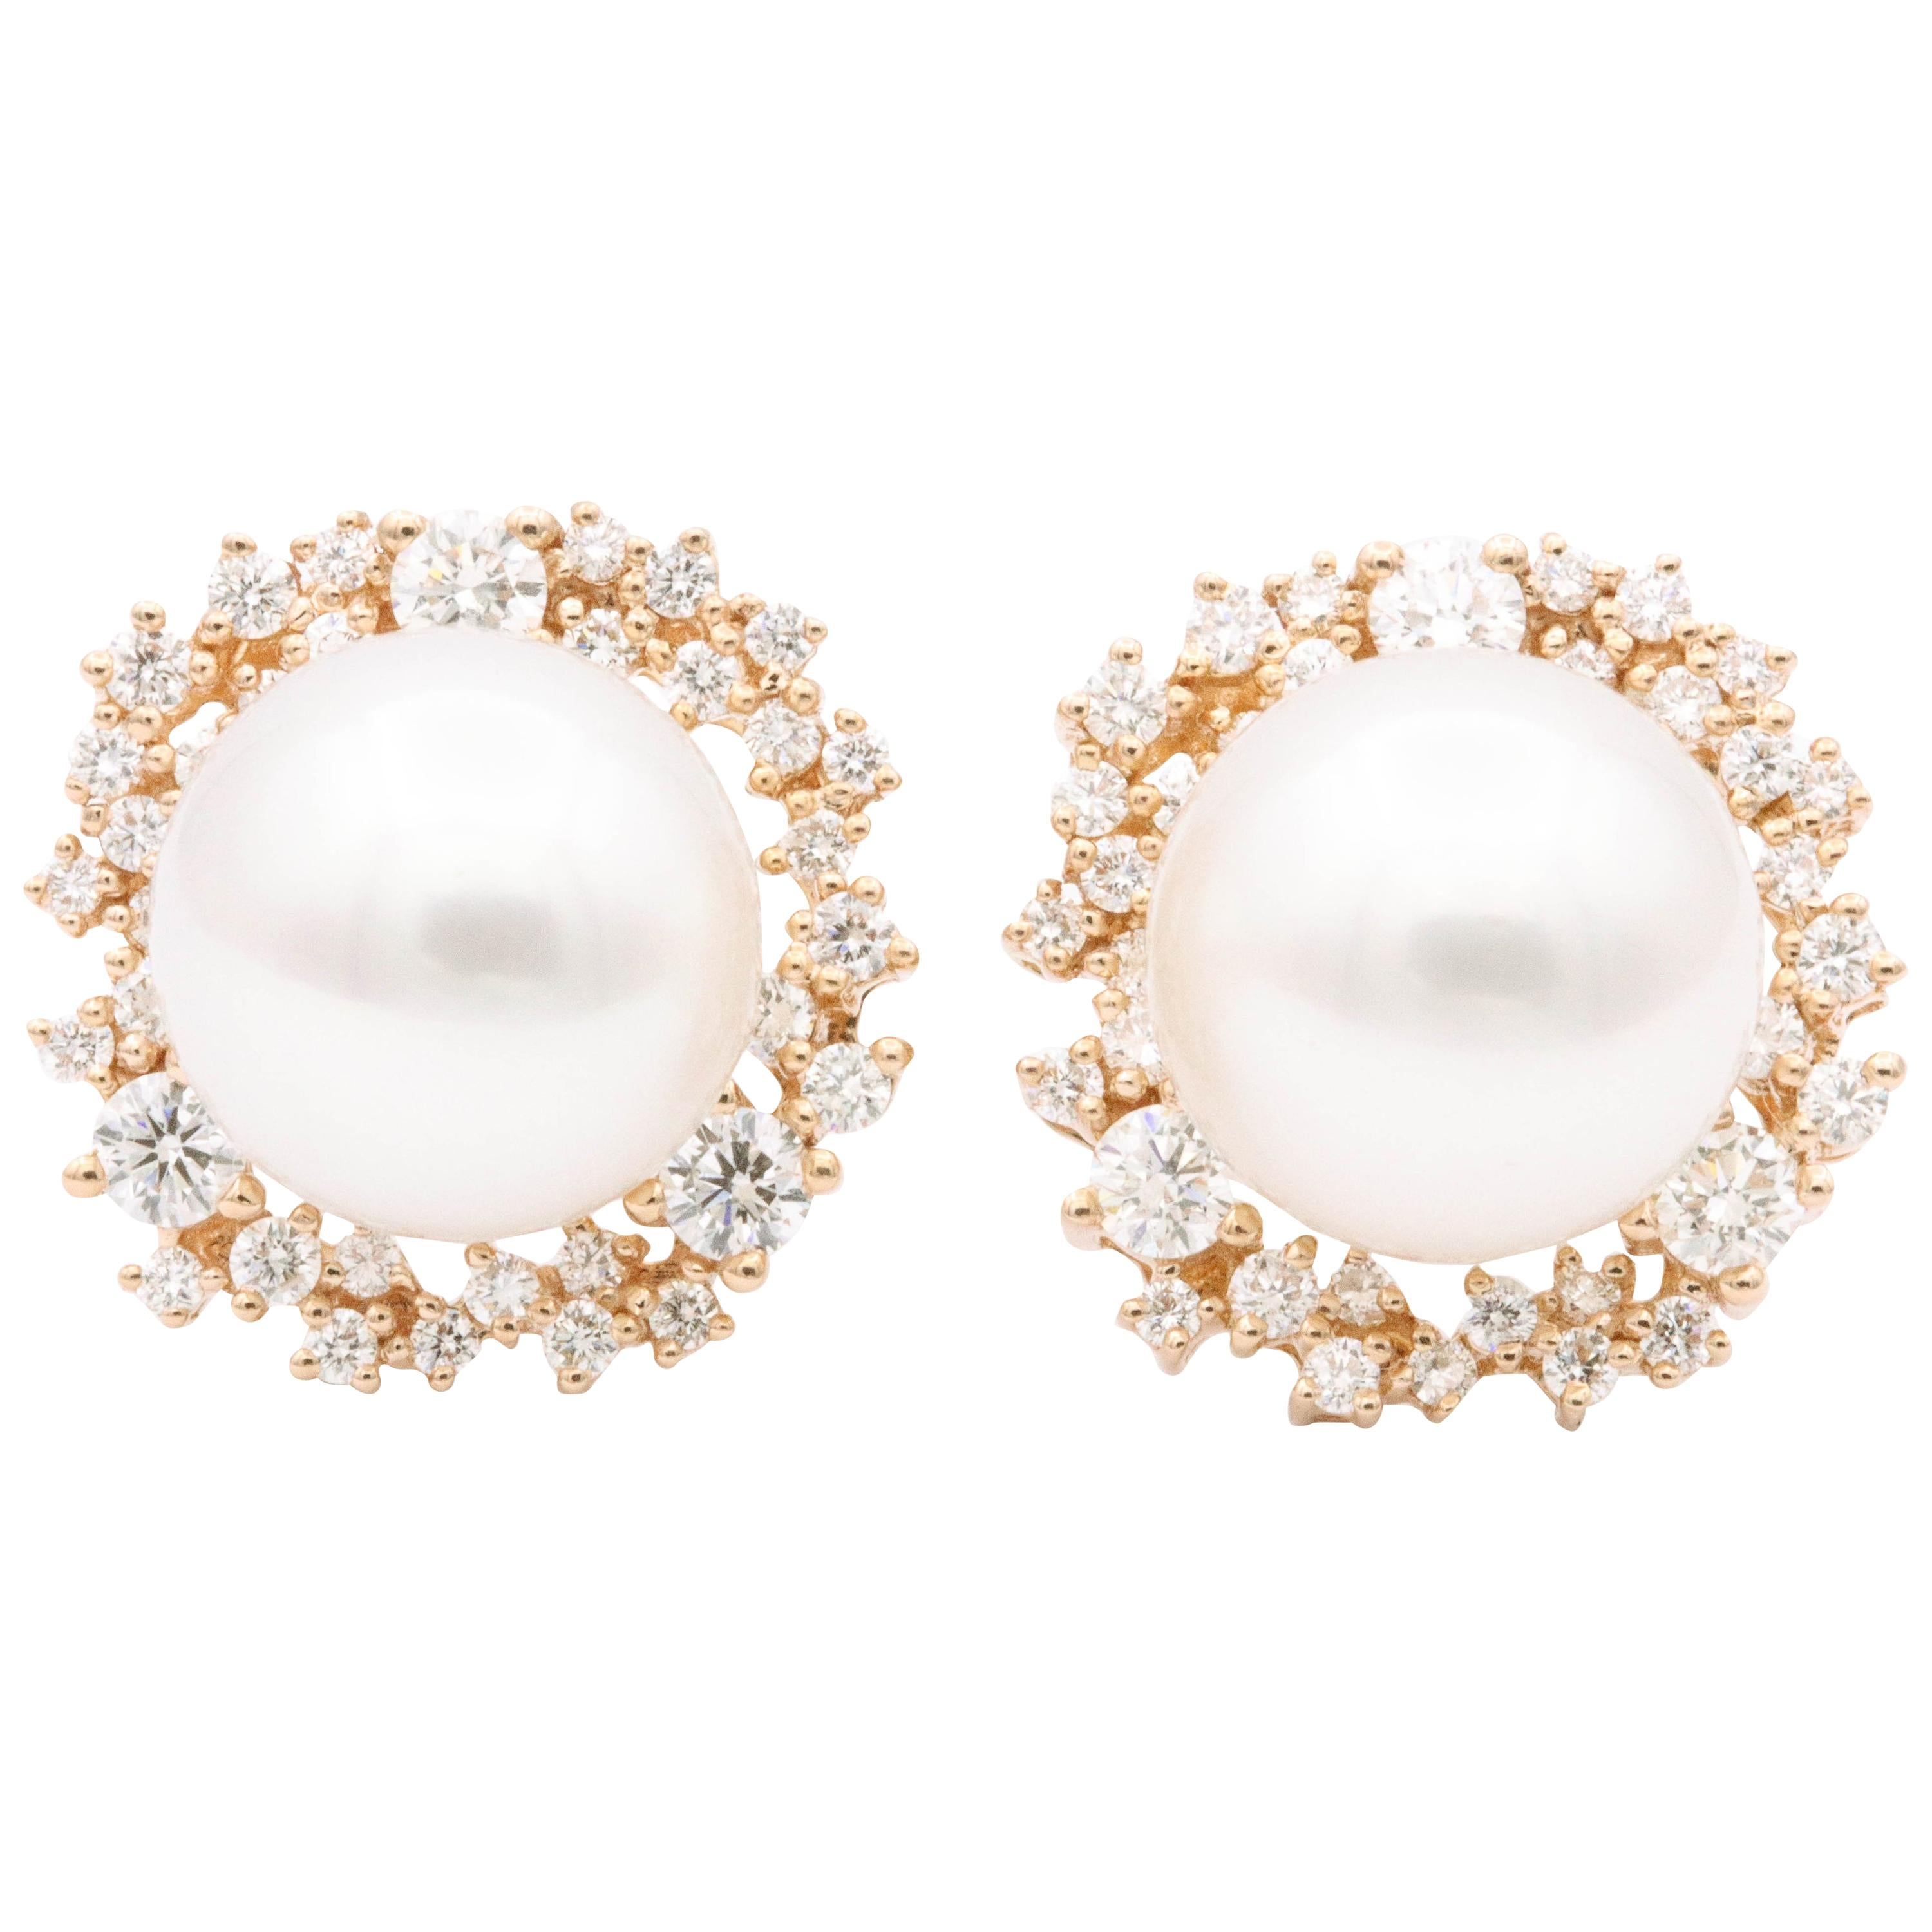 South Sea Pearl and Diamonds with Rose Gold Studs Earrings